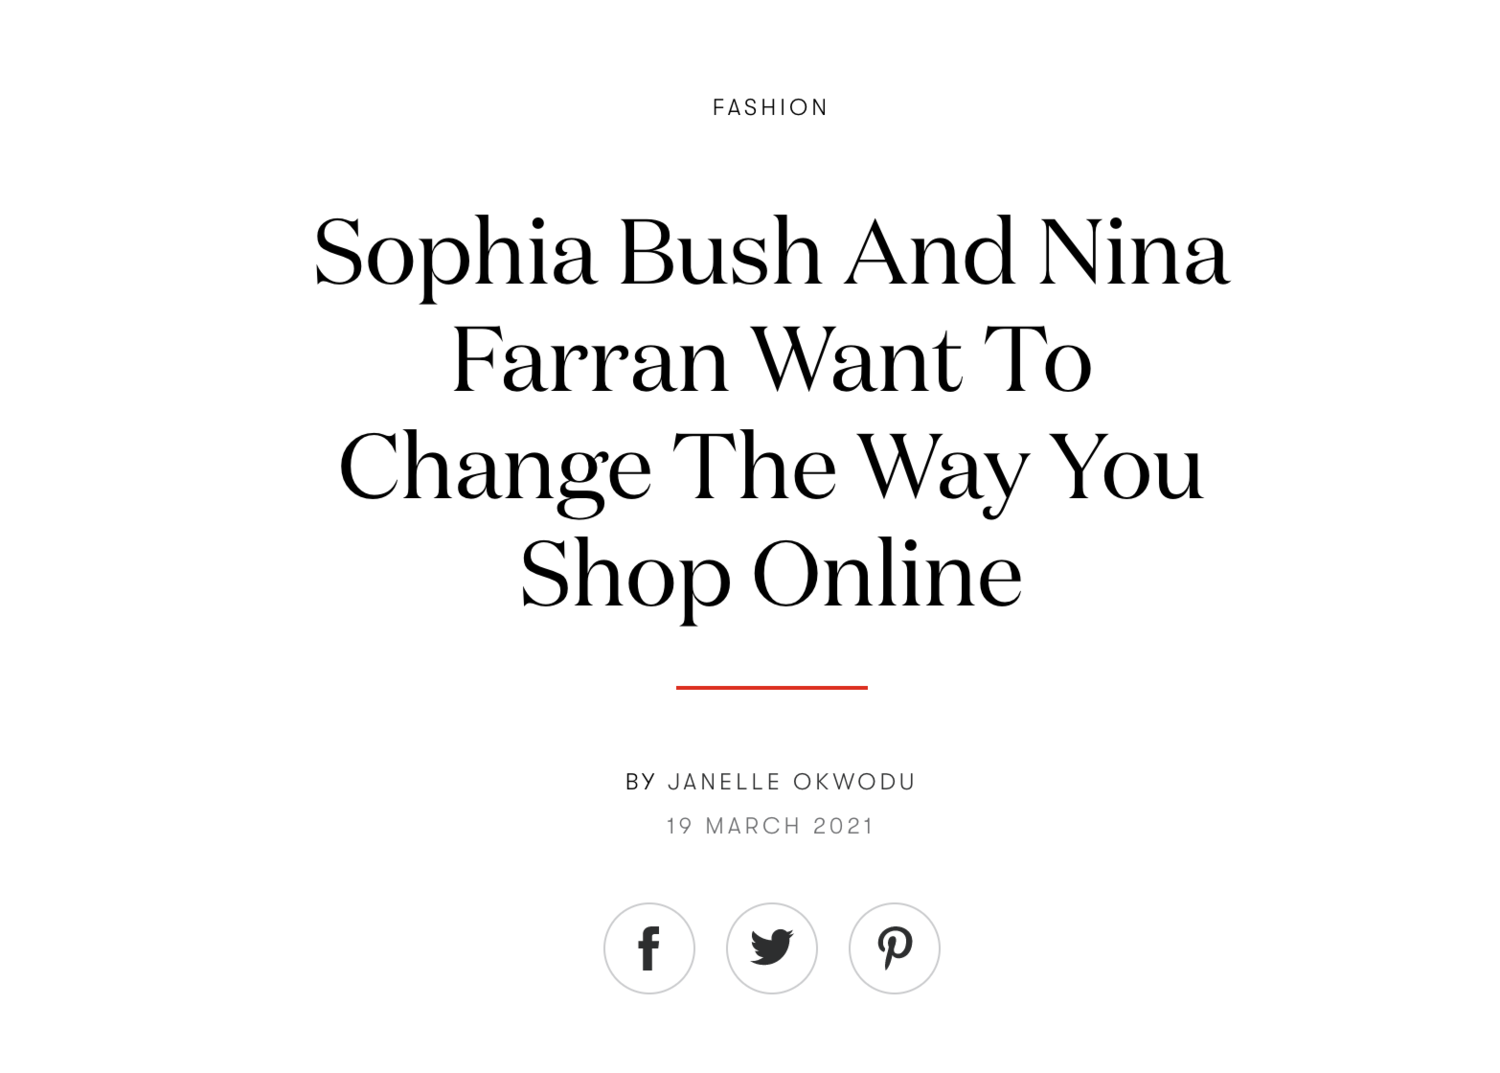 """Sophia Bush and Nina Farran aren't your typical fashion founders. The duo behind eco-conscious shopping destination, FashionKind, has brought a fresh perspective to the world of e-commerce. Founded in 2016 by Farran, the site is a gateway to the best in handcrafted and sustainable luxury. Though the pair prefer the term """"impactful"""" to the overused """"sustainable"""", they're eager to make shopping an experience that goes beyond consumption and connects with the way their customers want to engage with the world. """"It's the choices you make in your daily life that can make a big difference, no matter how small they may seem in the moment,"""" says Farran. """"[Still] personal choice can only go so far. It's become clear in the past few years that we need to pressure big companies to make changes. What we are hoping to do with  Fashionkind  [is] to set an example for other retailers and luxury brands and influence how they do business."""""""